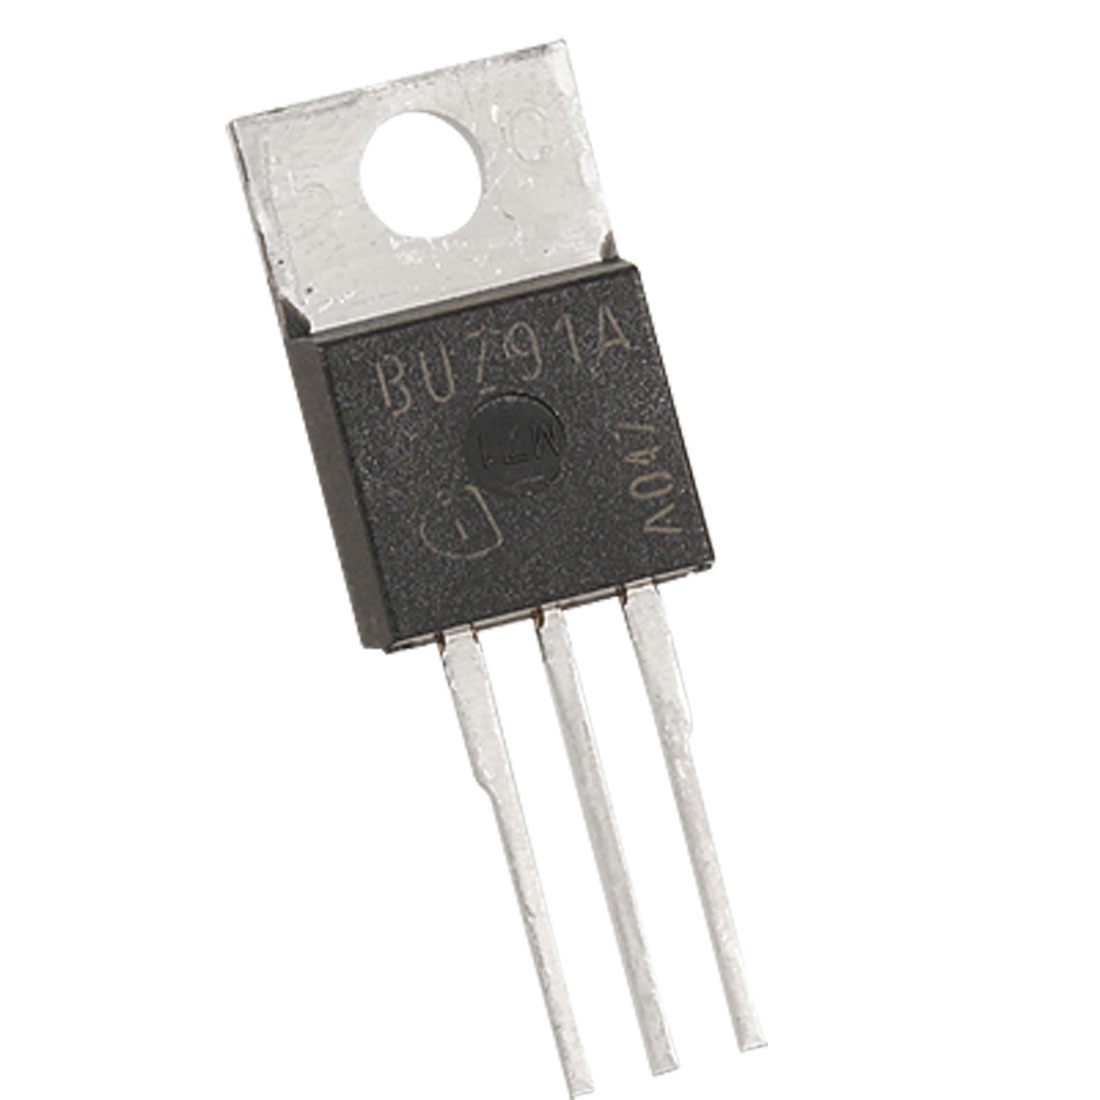 5 Pcs BUZ91A 30V 60A N-channel Power MOSFET Transistors